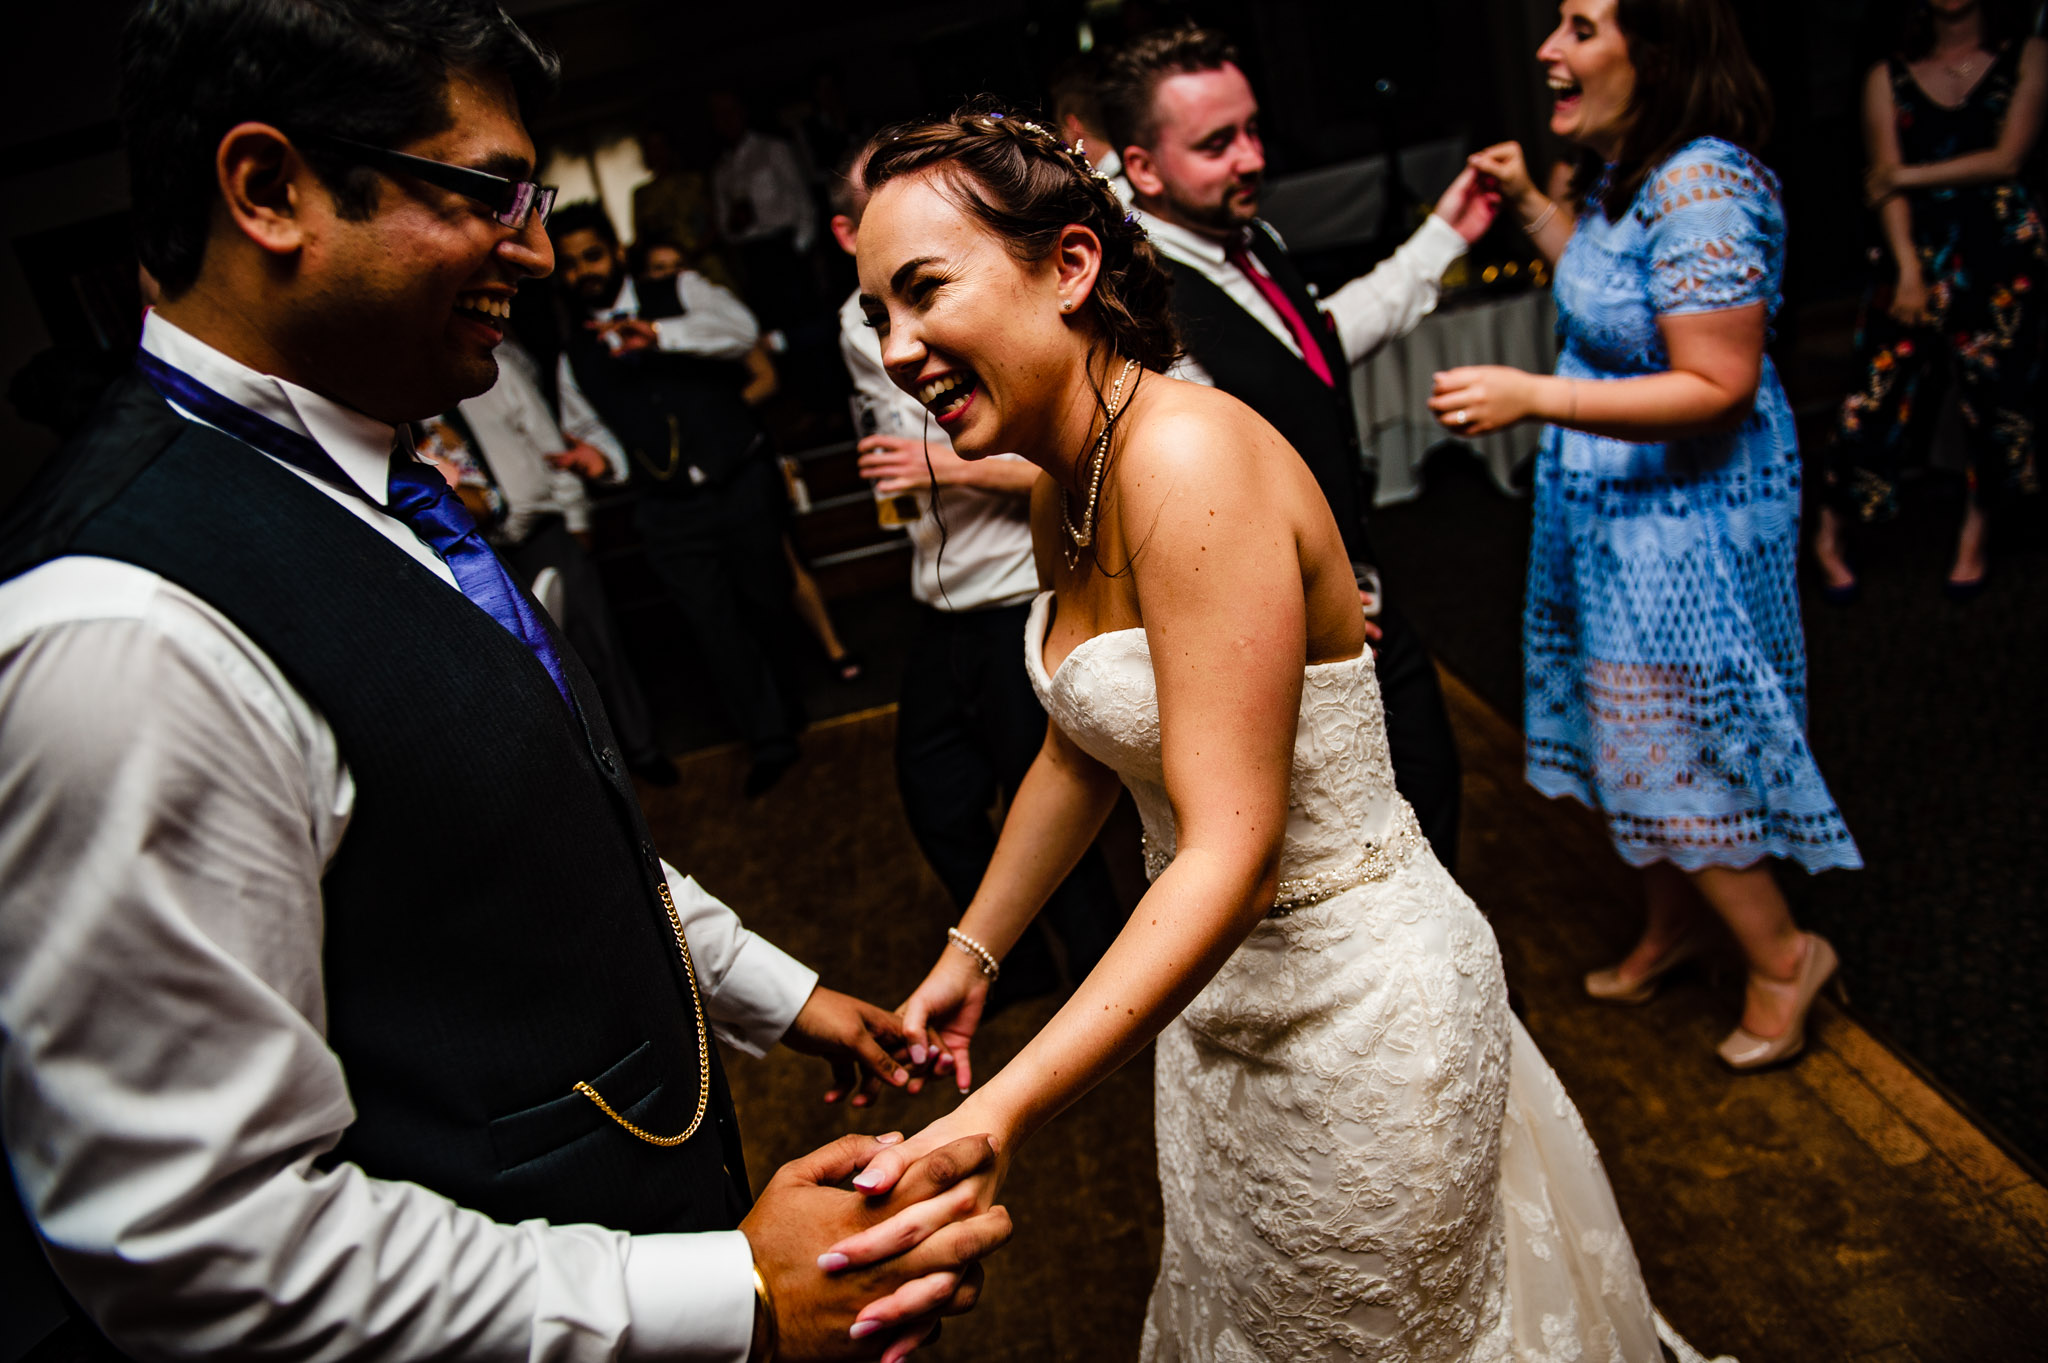 Bride and groom laughing while dancing